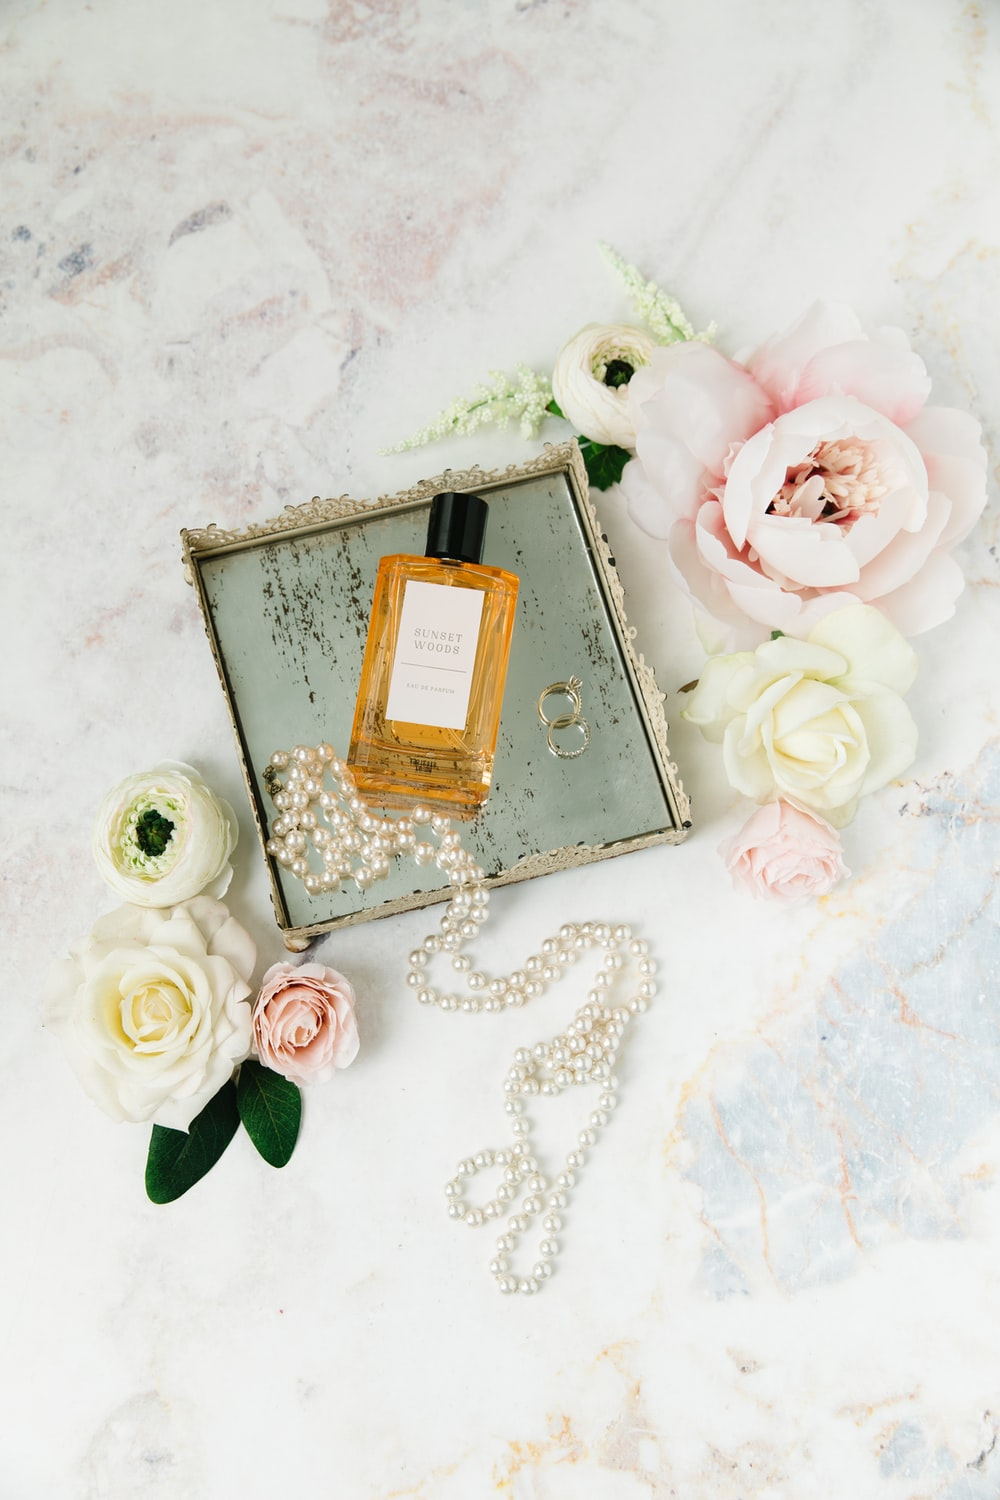 gold perfume bottle on white and pink floral textile